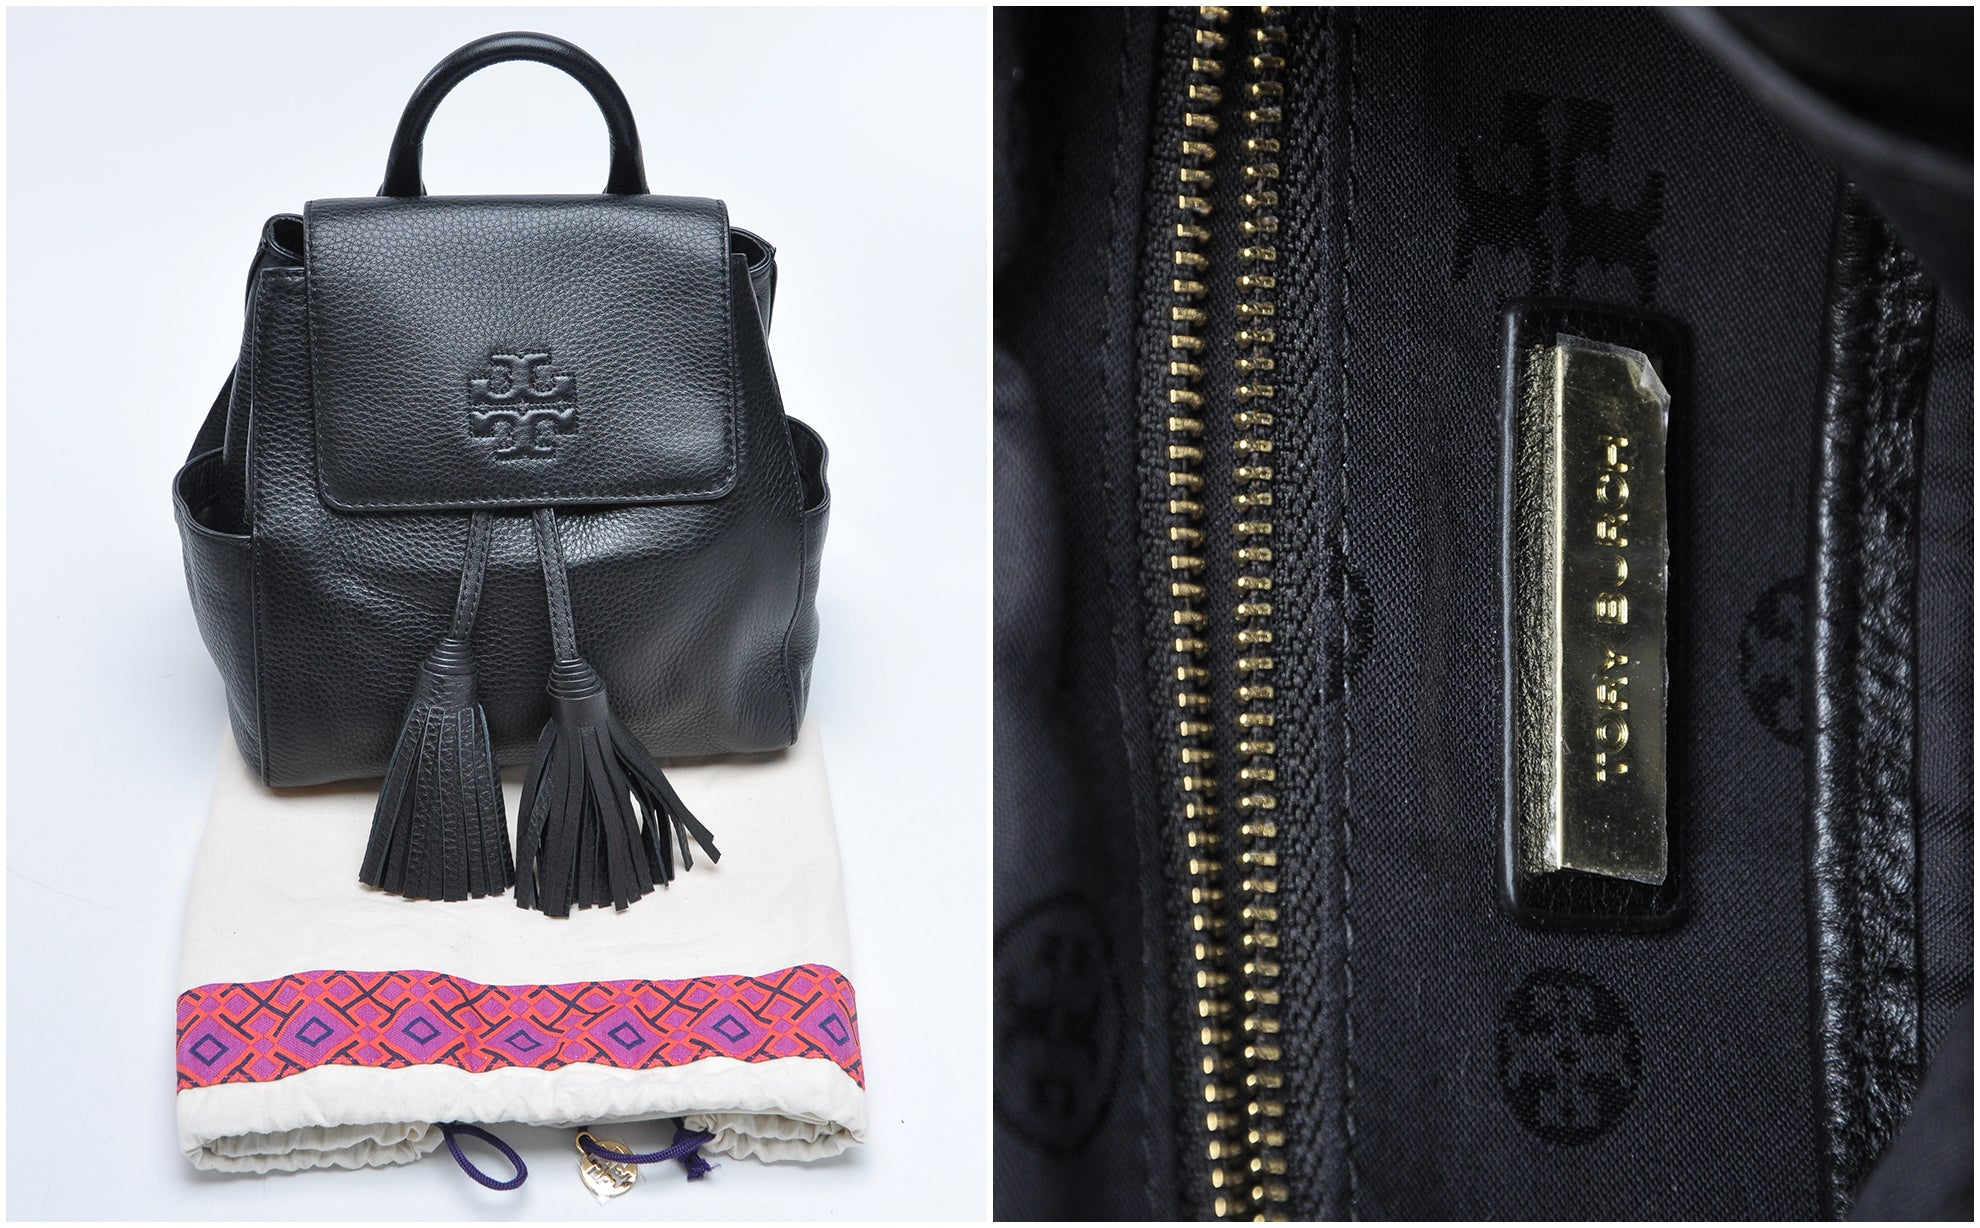 Tory Burch Thea Backpack in Black